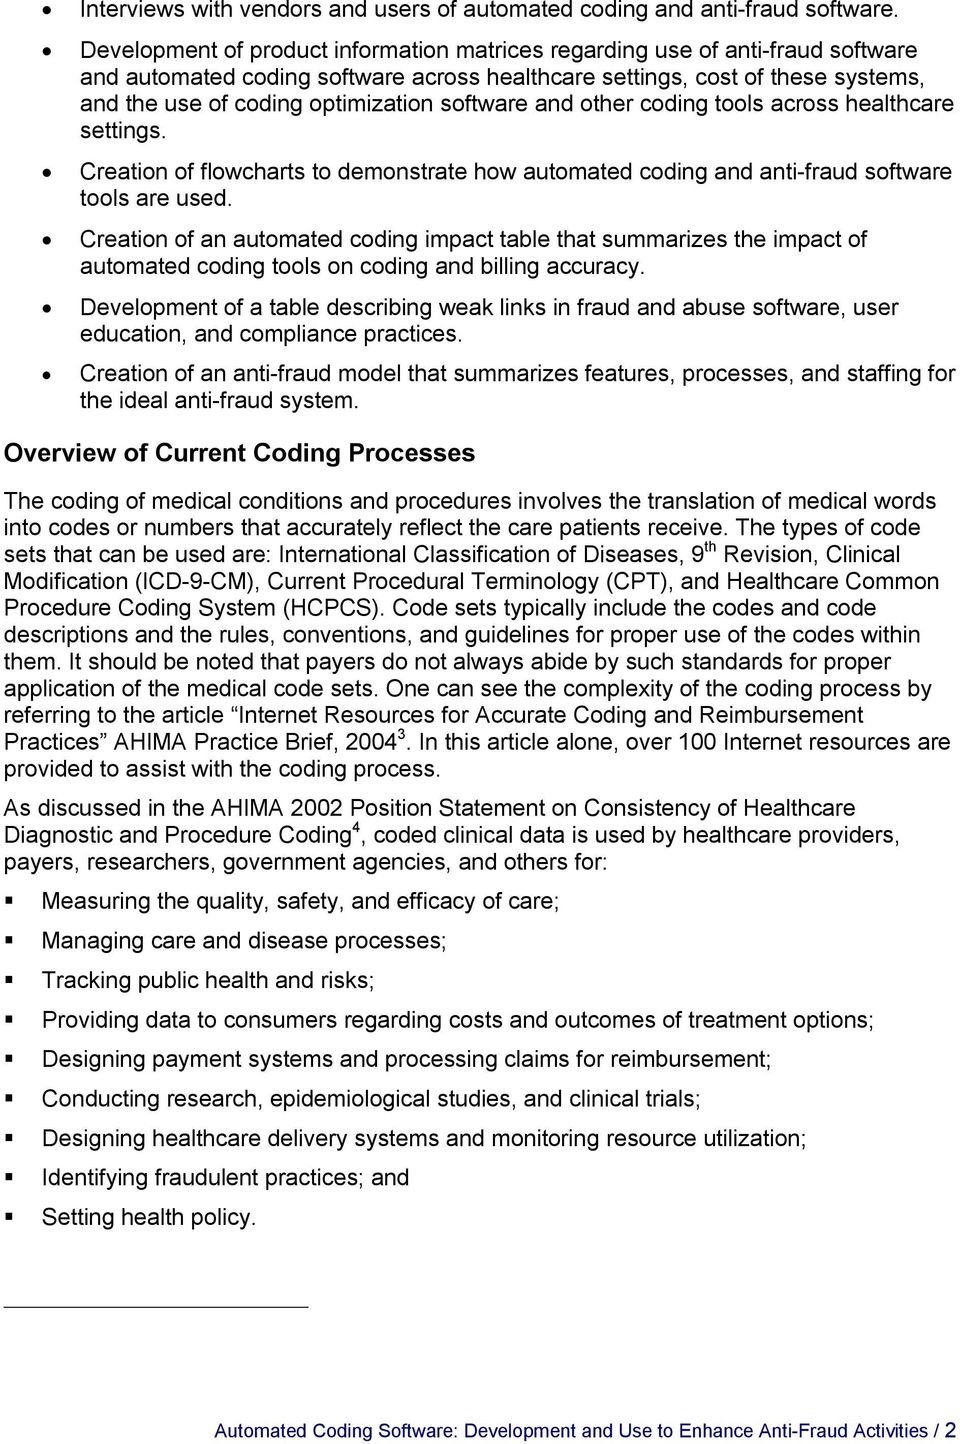 software and other coding tools across healthcare settings. Creation of flowcharts to demonstrate how automated coding and anti fraud software tools are used.